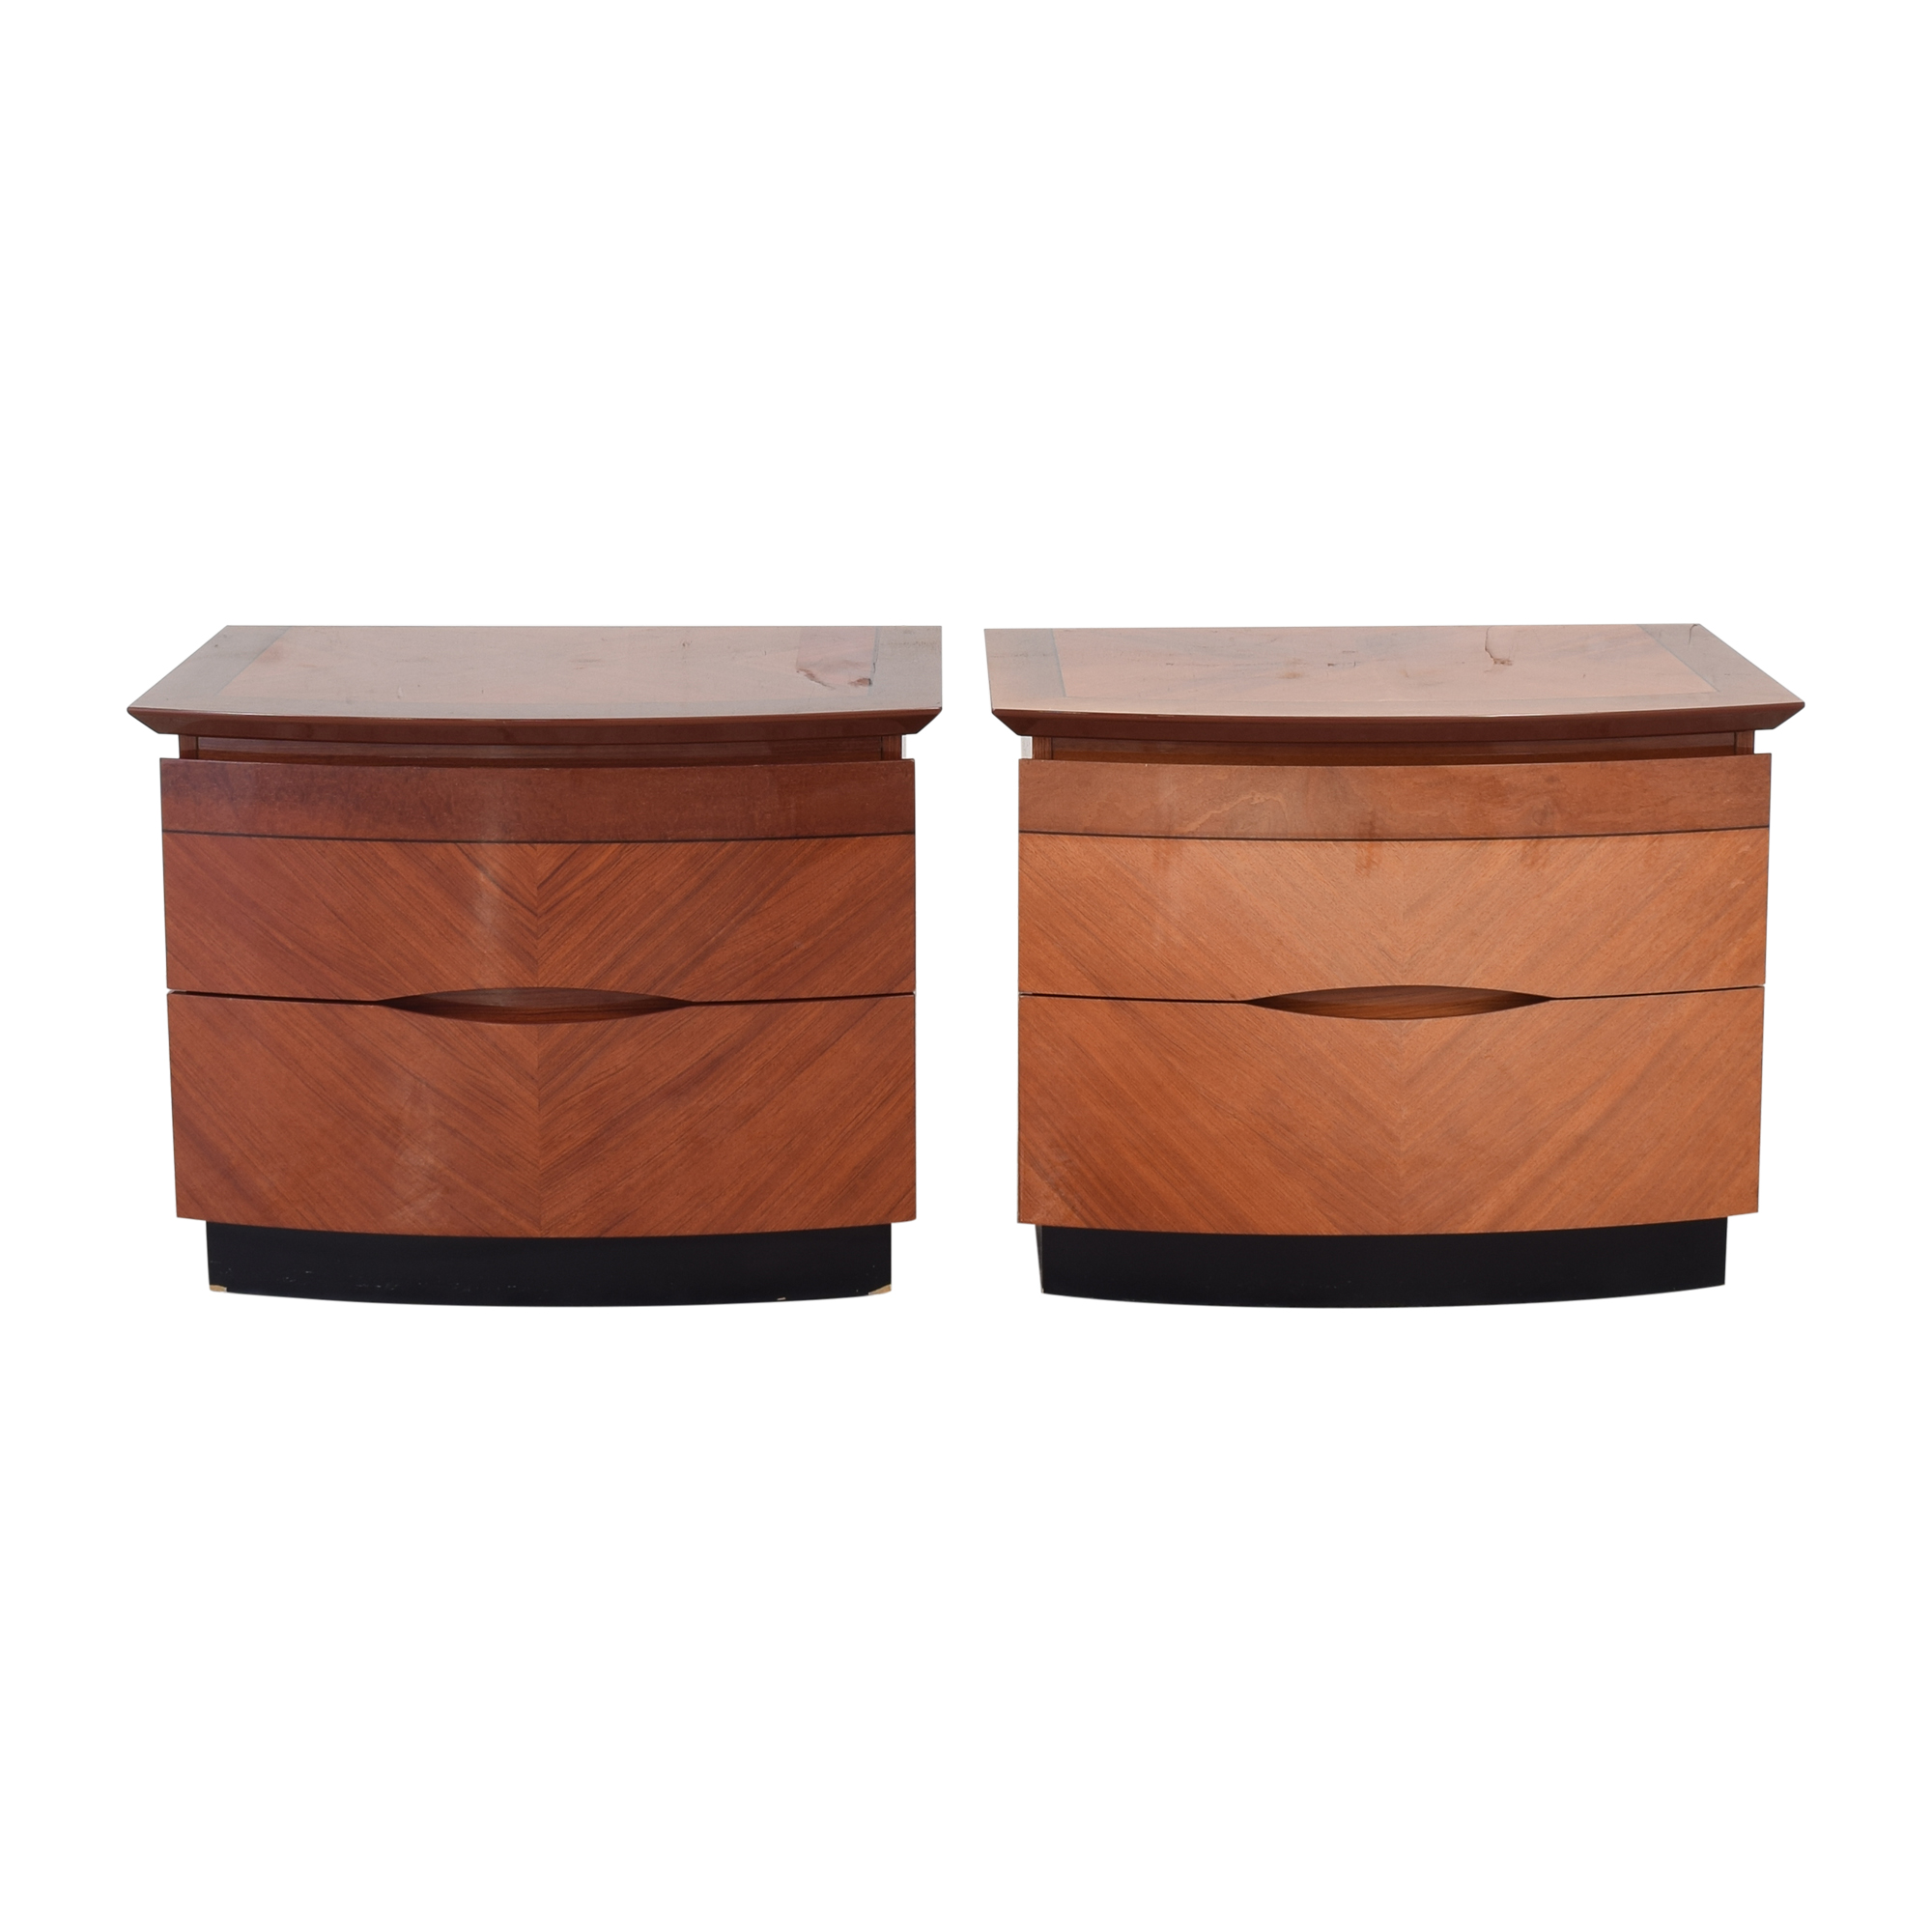 Two Drawer Nightstands used